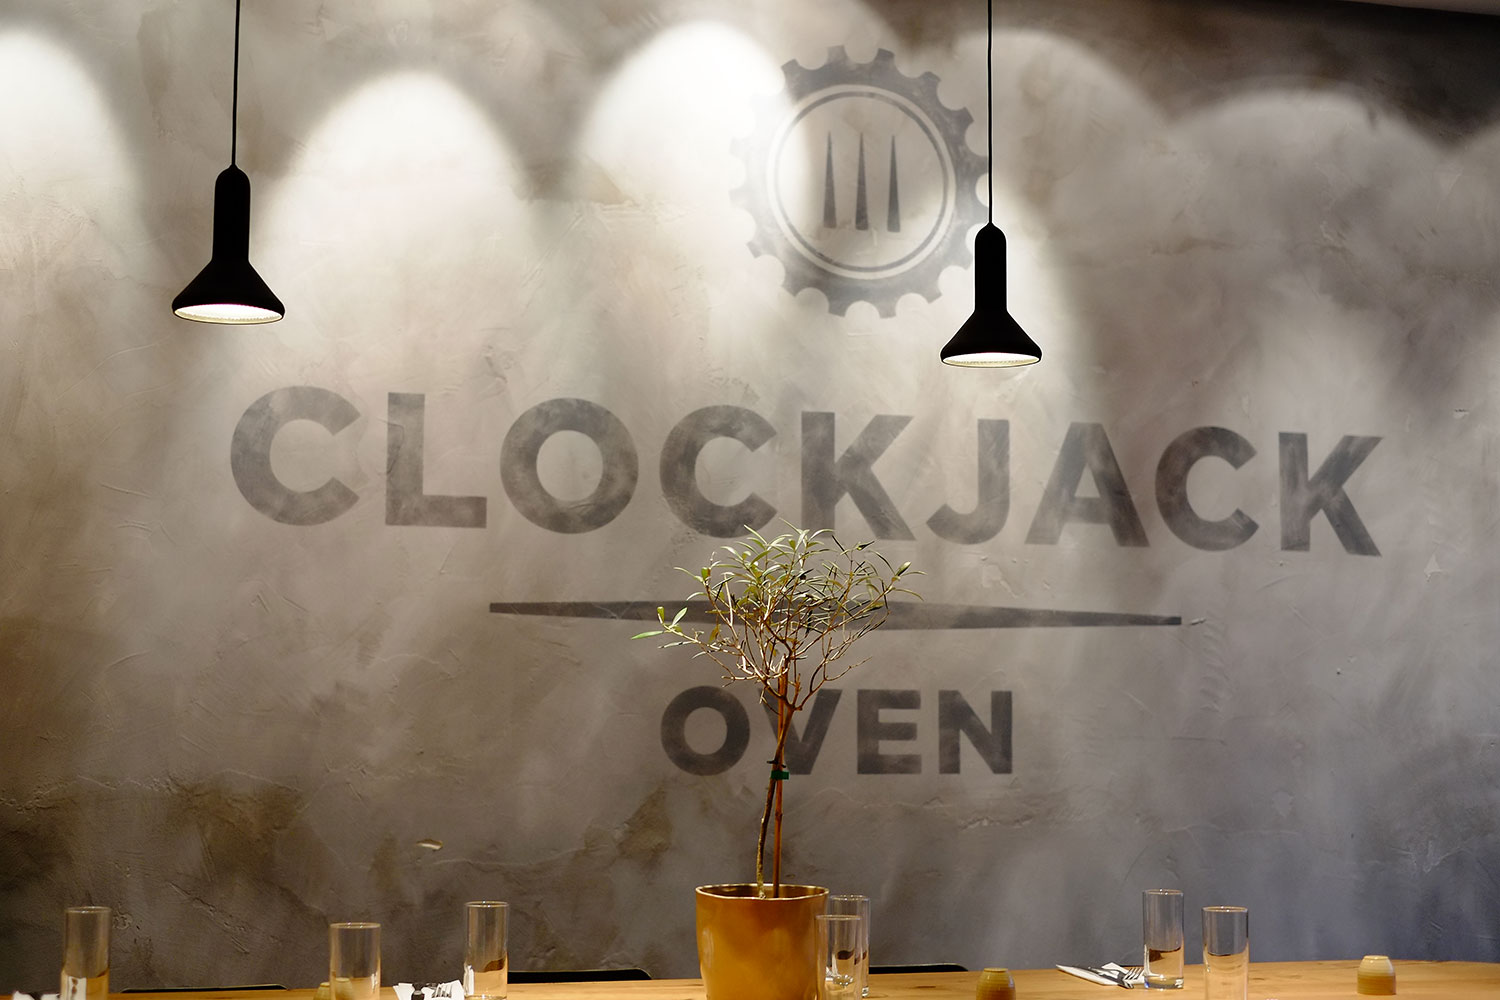 Clockjack Oven London © Neil Hennessy-Vass